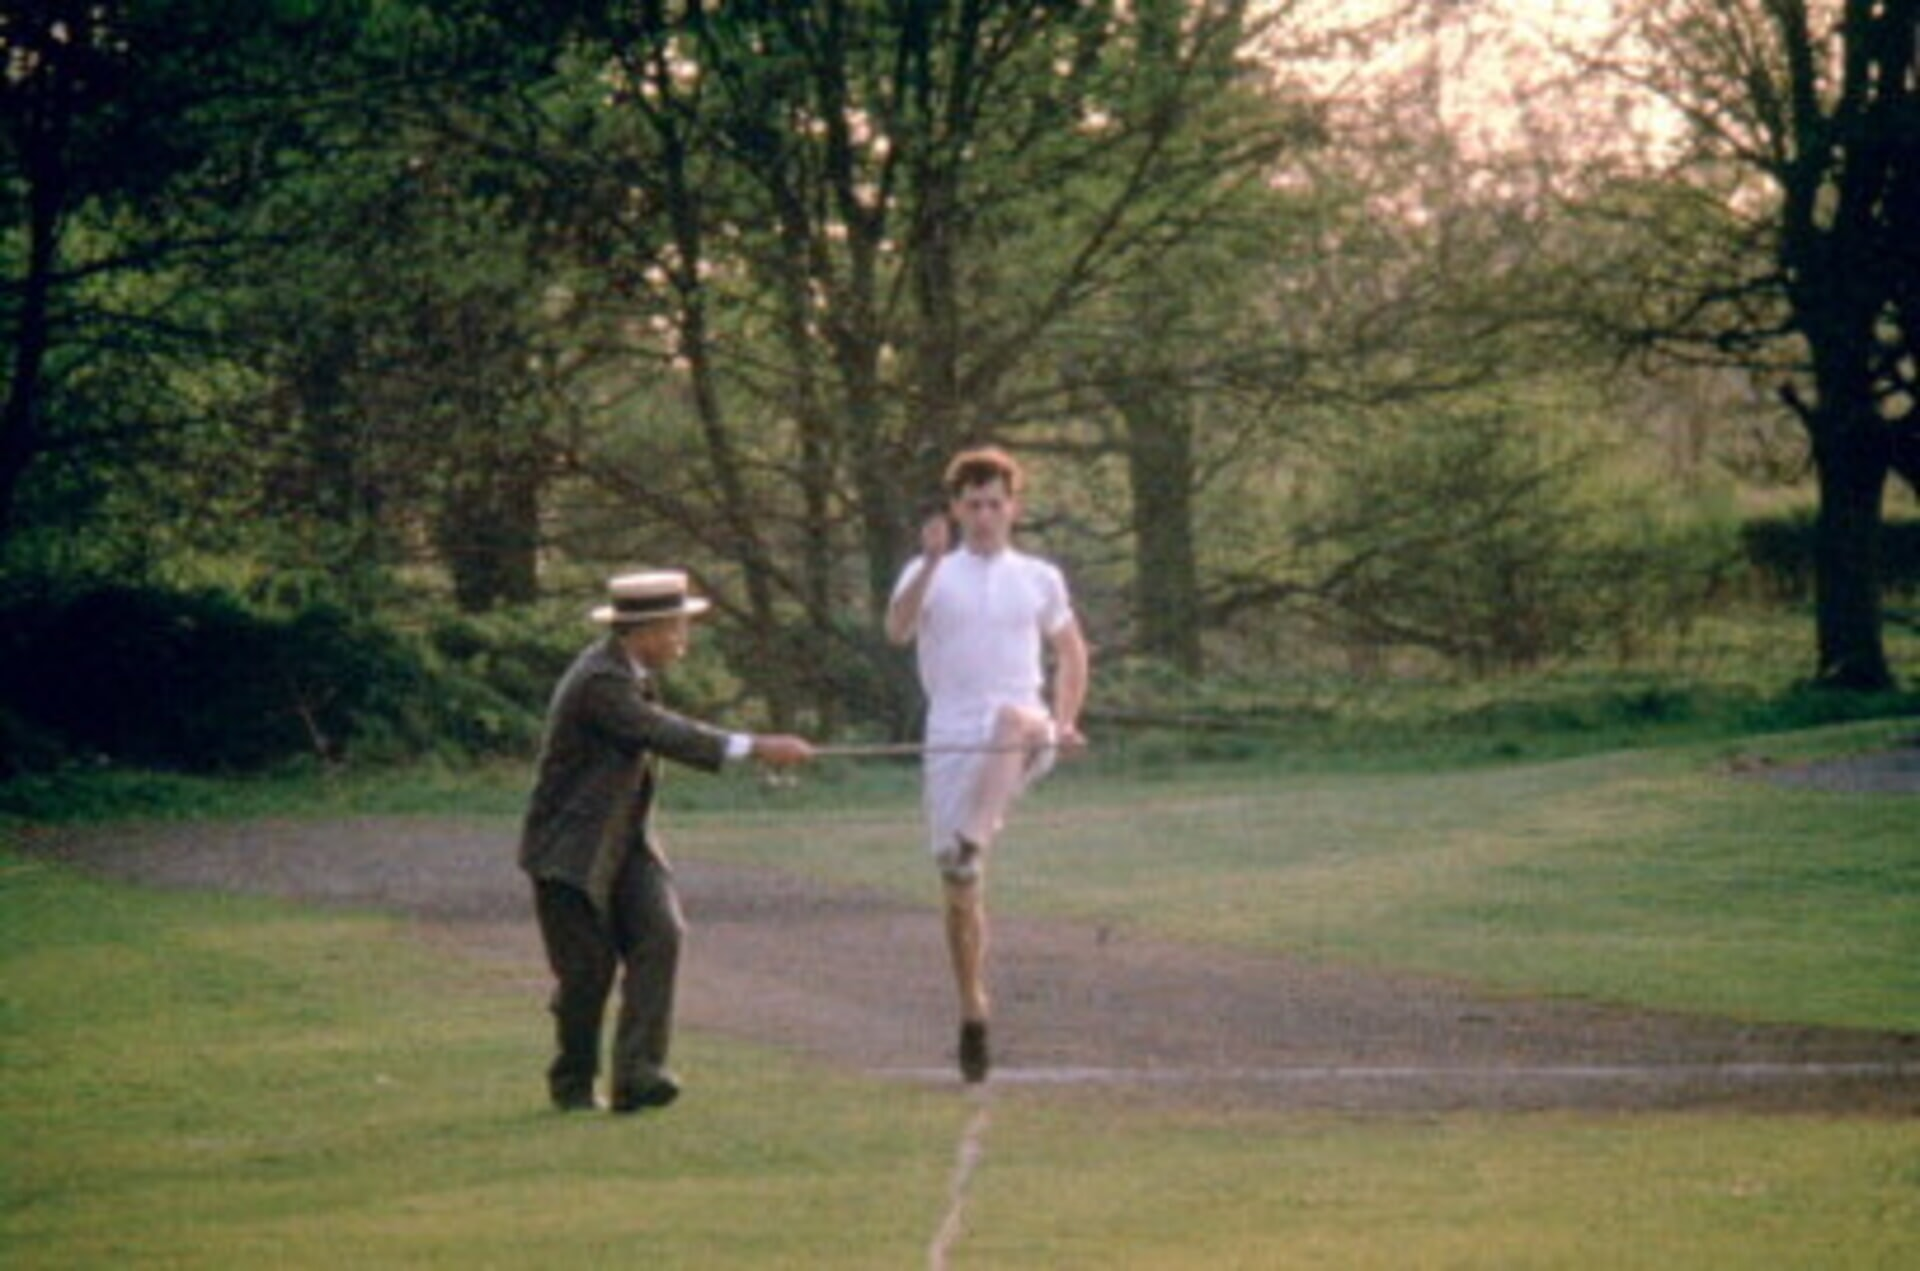 Chariots of Fire - Image 6